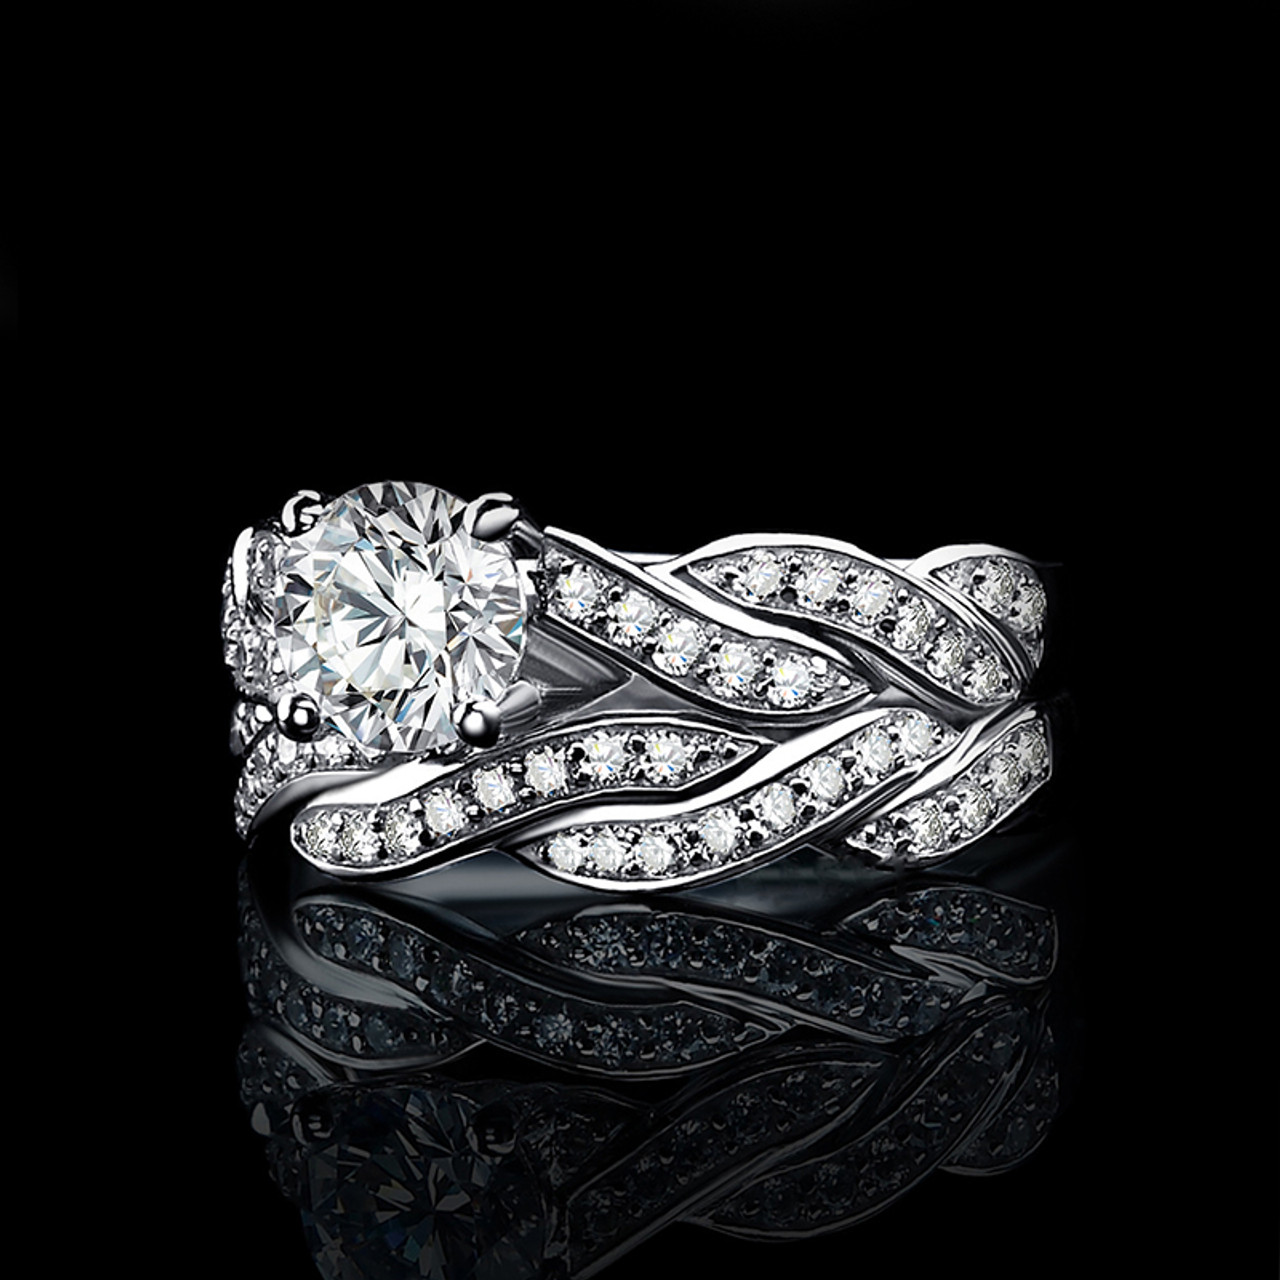 f0b96464e ... JewelryPalace Infinity 1.5ct Cubic Zirconia Anniversary Promise Wedding  Band Engagement Ring Bridal Sets 100 925 ...